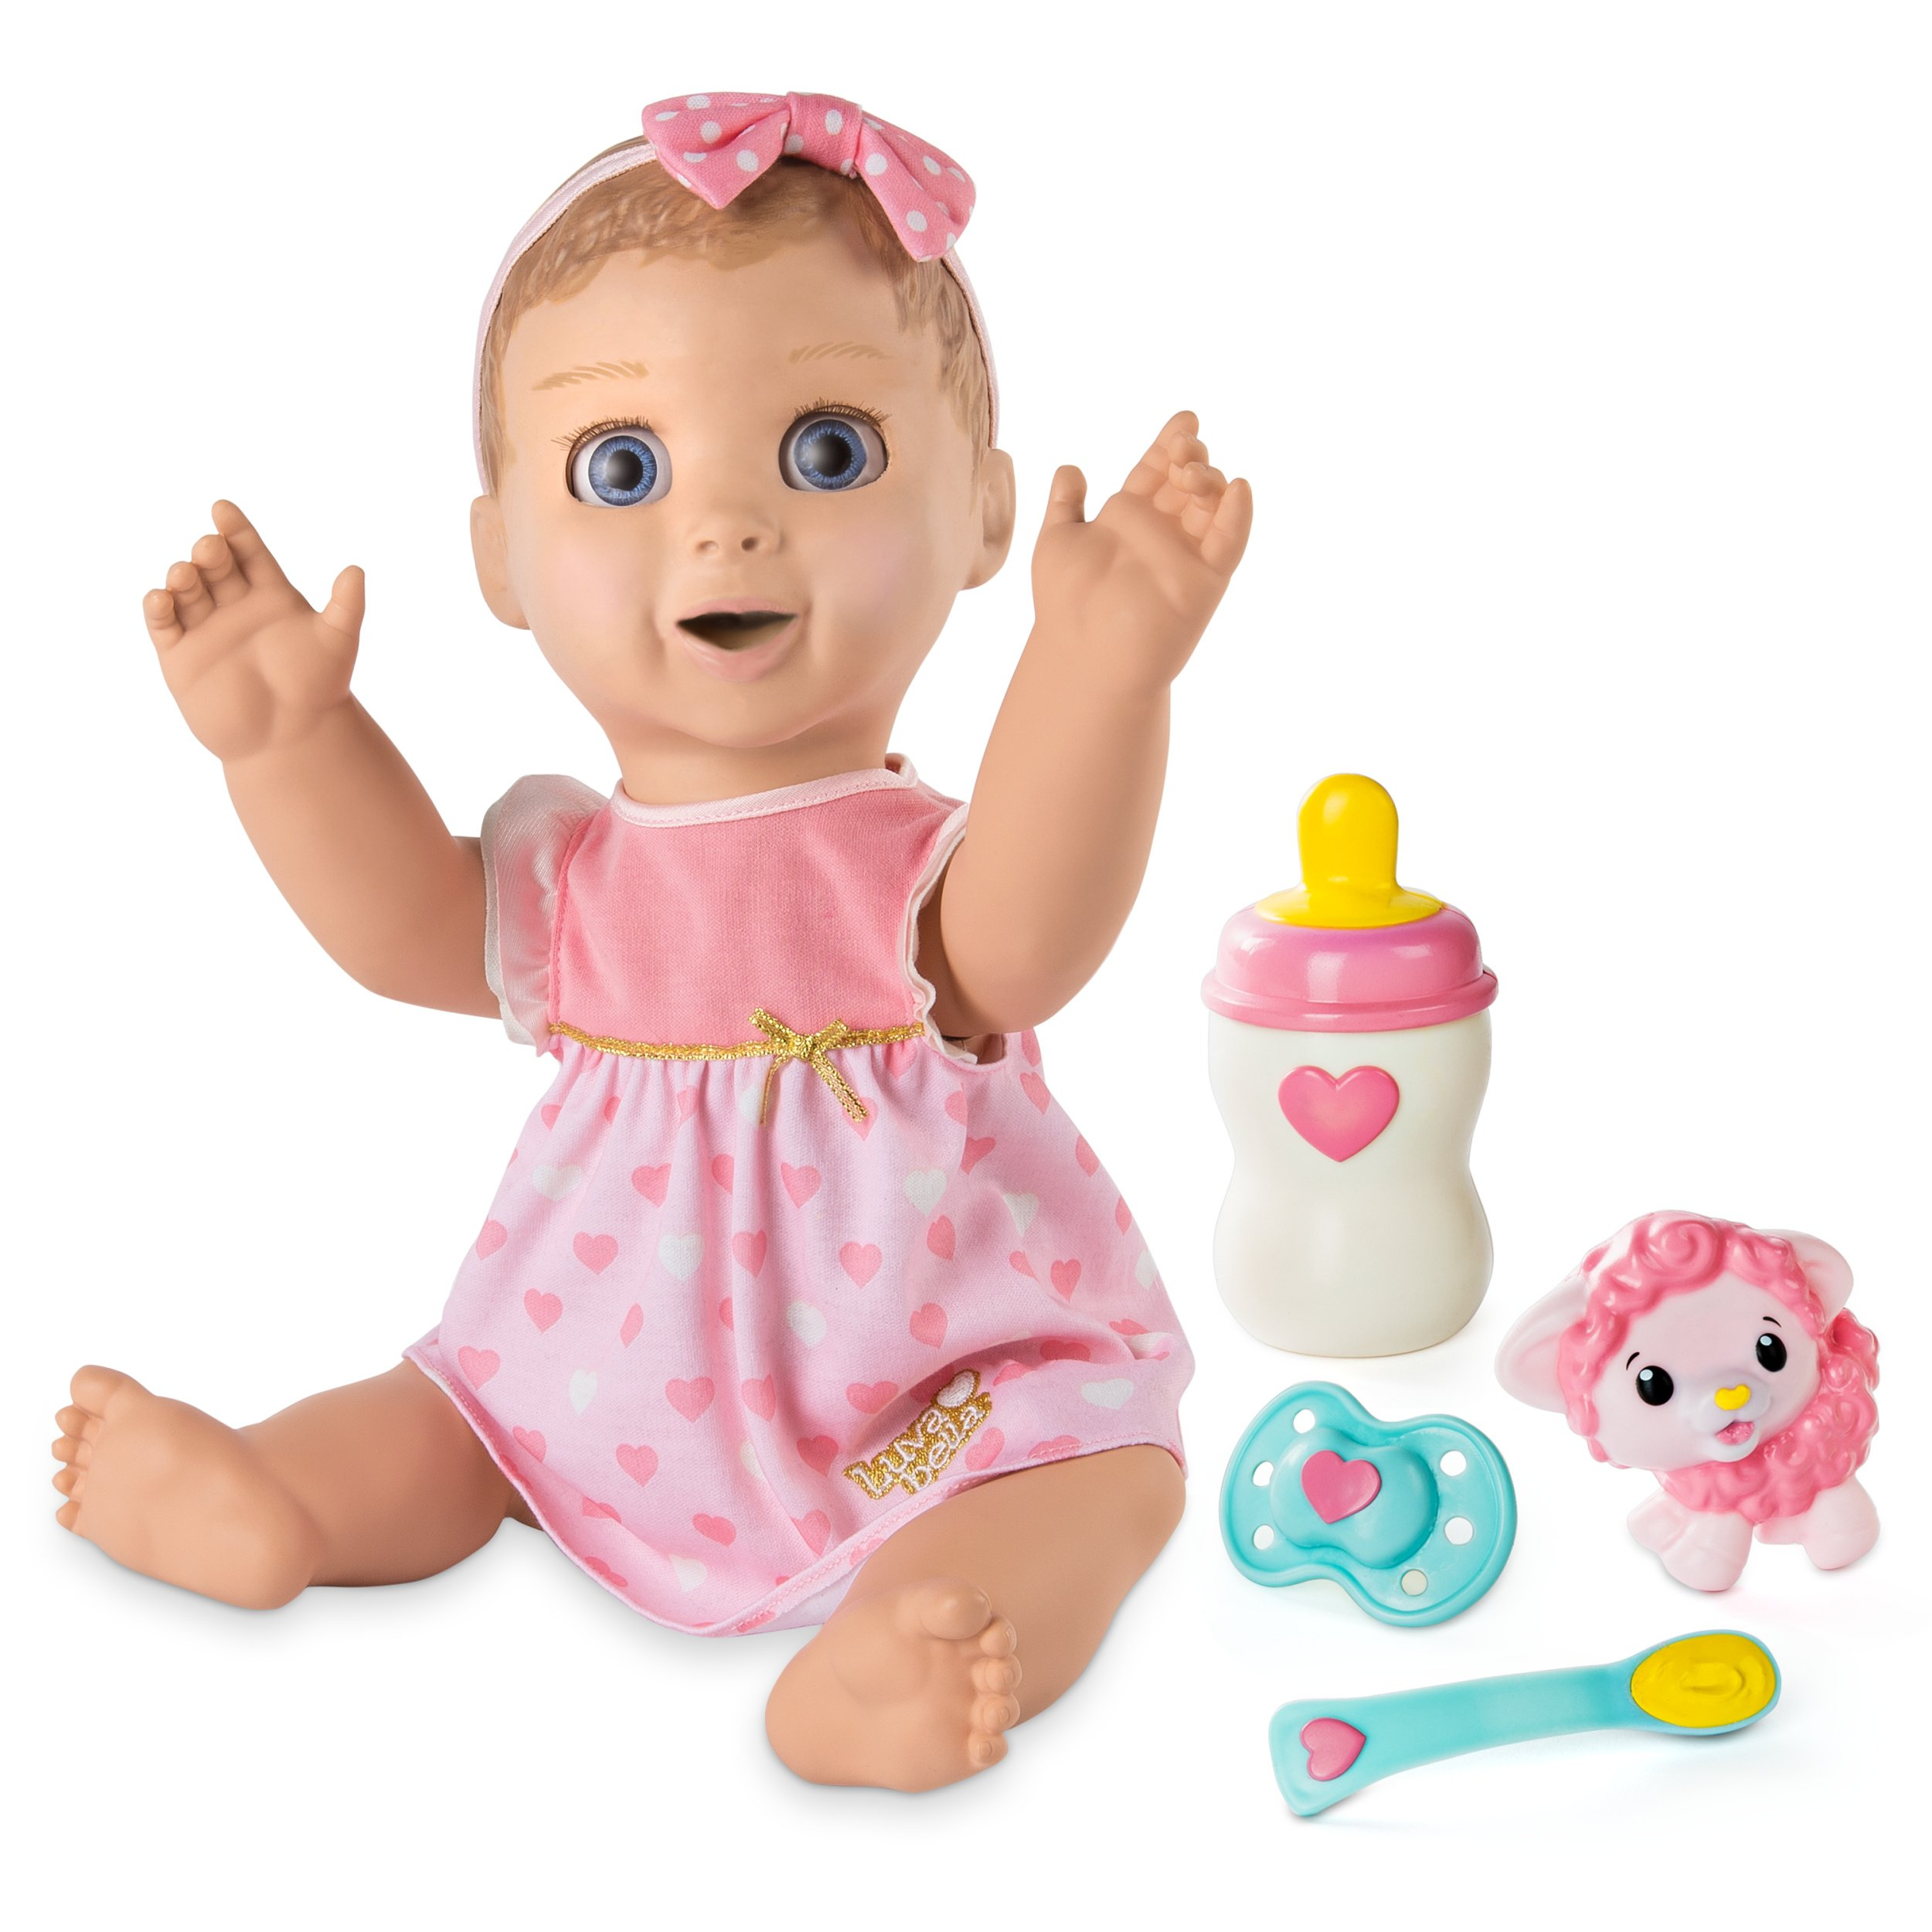 Dolls & Bears Responsible Luvabella Blonde Hair Interactive Doll Not Working Latest Technology